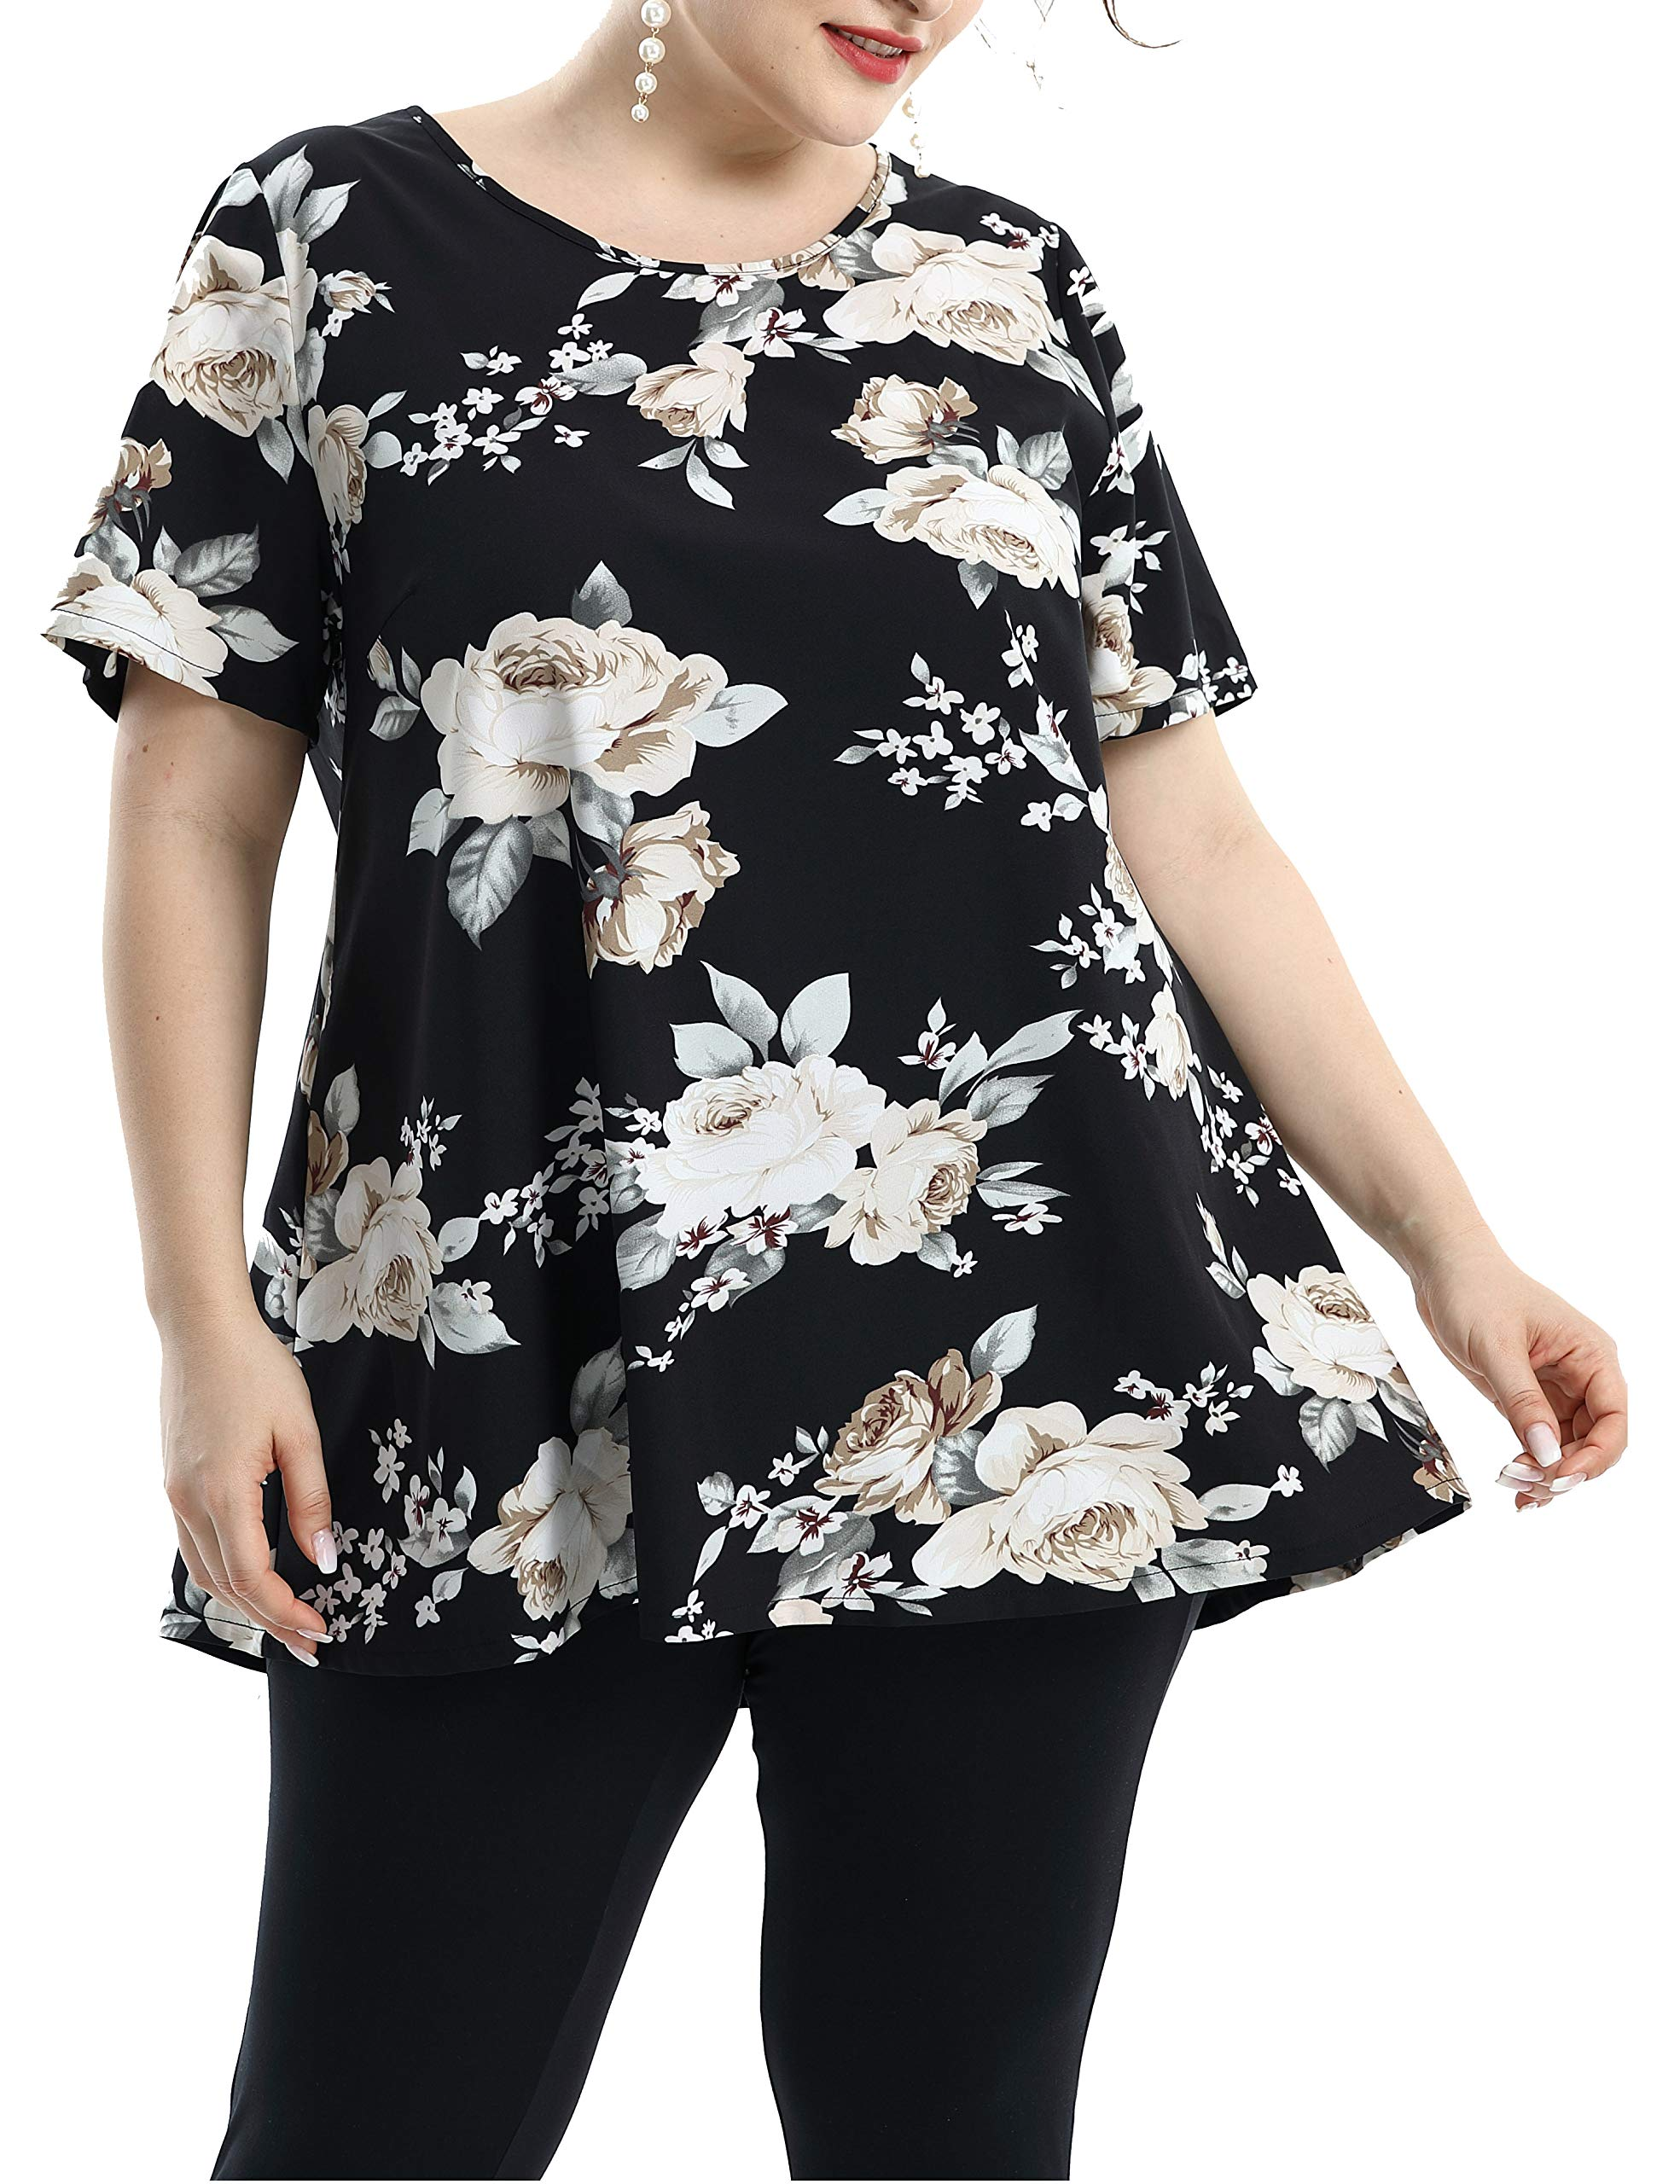 Shiaili Flowy Plus Size Blouses for Women Peony Floral Shirt Short Sleeve Summer Tops